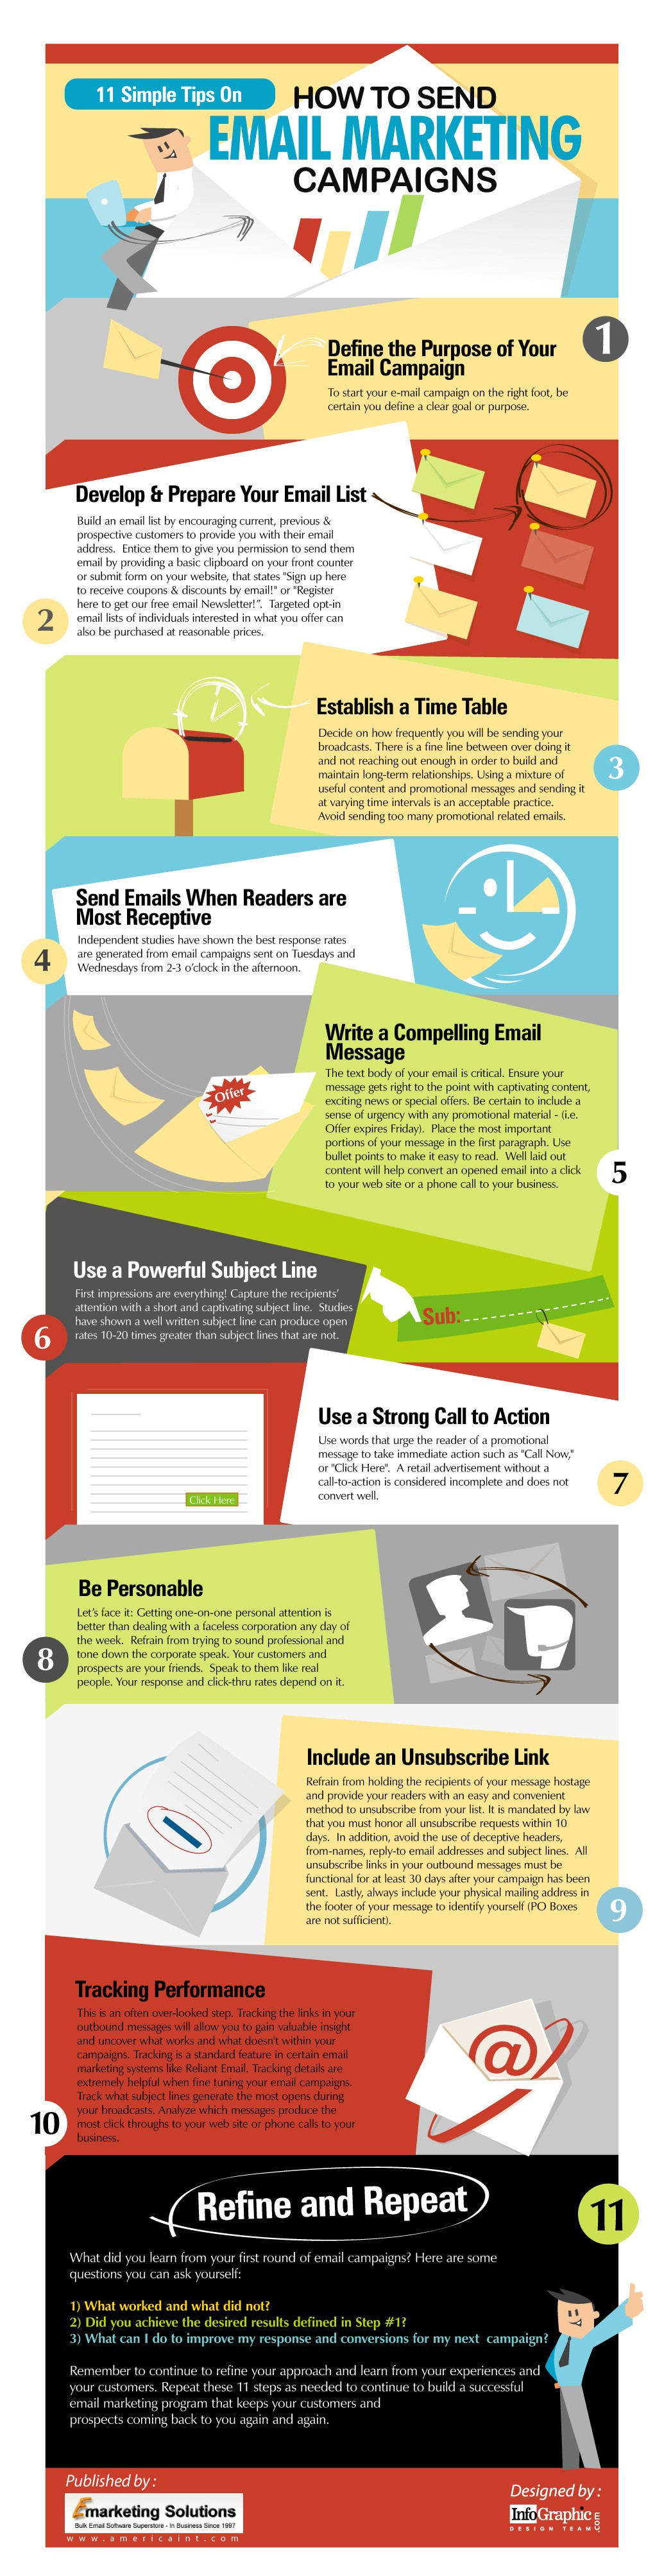 11 Simple Tips On How To Send Email Marketing Campaigns ...